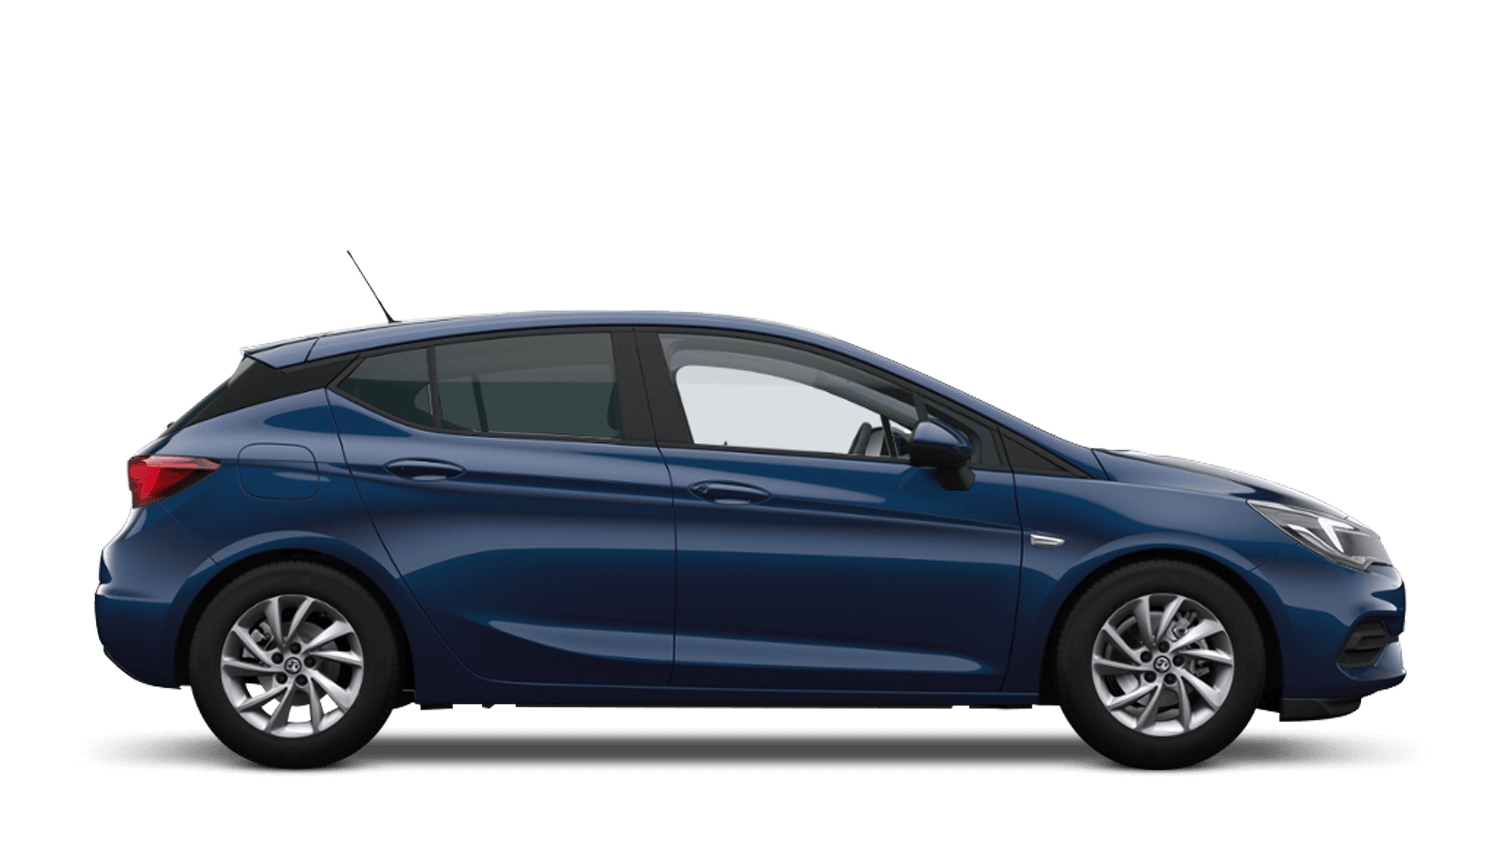 Navy Blue (Metallic) New Vauxhall Astra